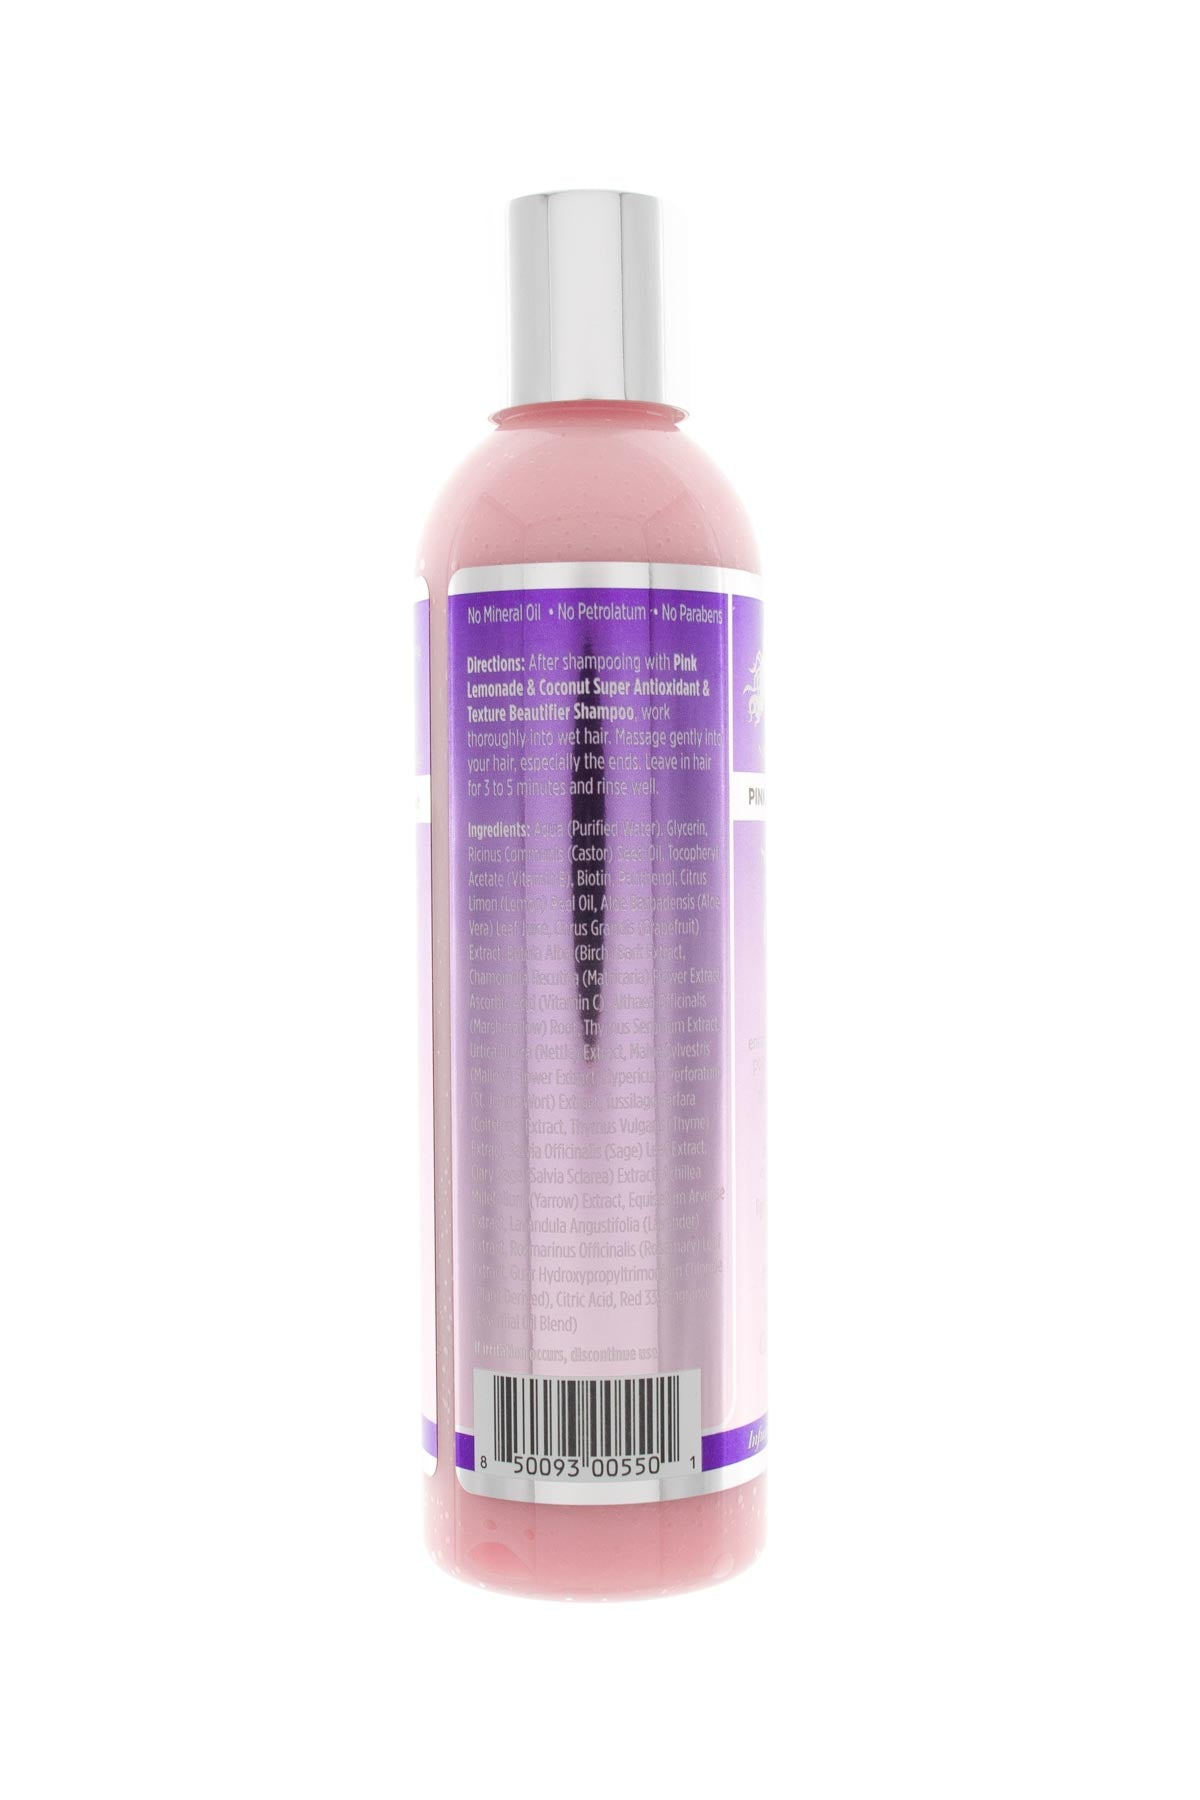 Curly Hair Conditioner - The Mane Choice